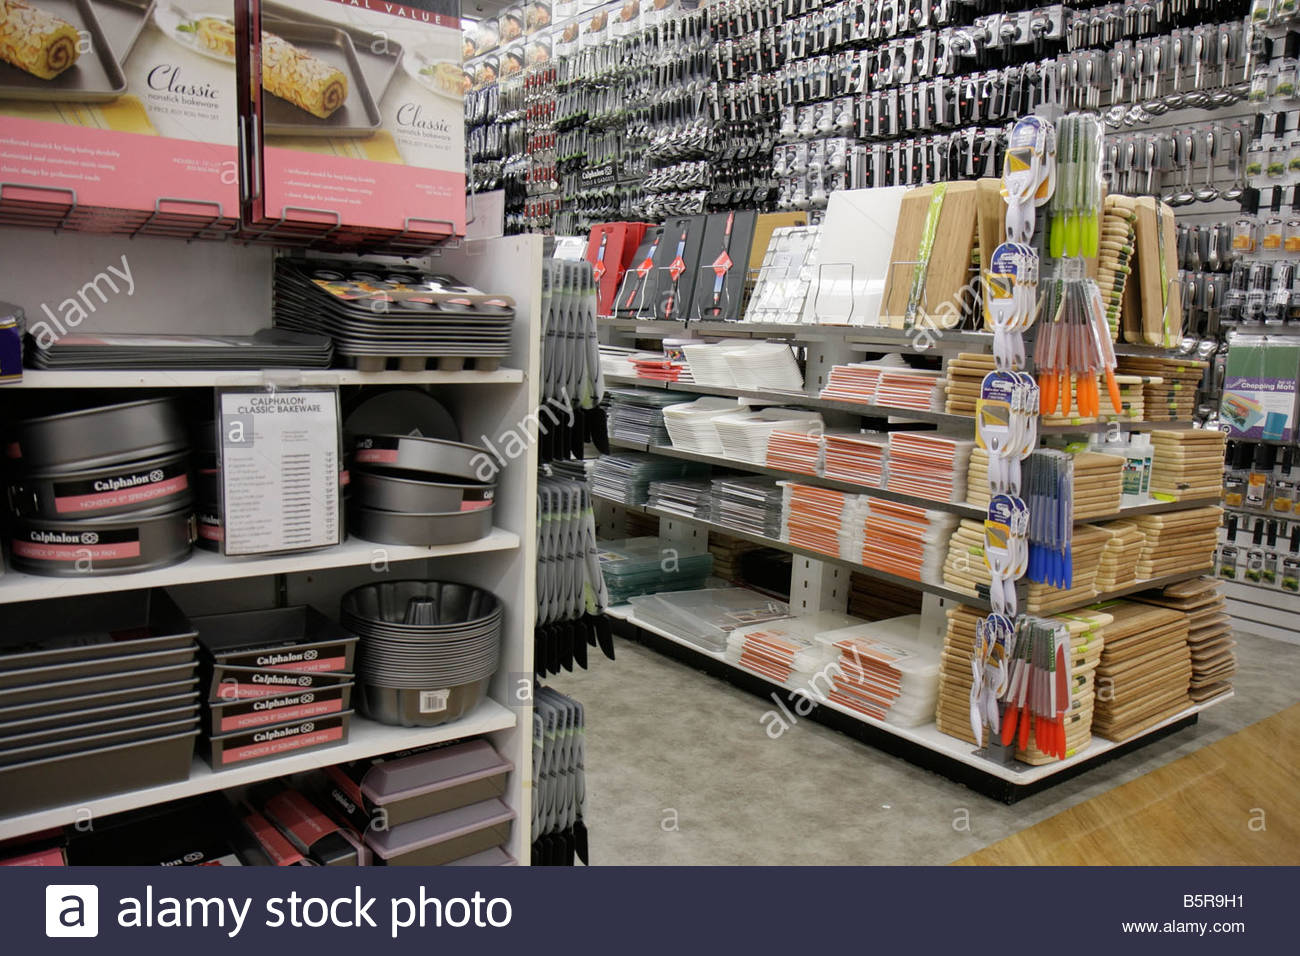 Bed bath and beyond chicago il - Miami Florida Dadeland Bed Bath And Beyond House Wares Household Goods Kitchen Accessories Bake Ware Retail